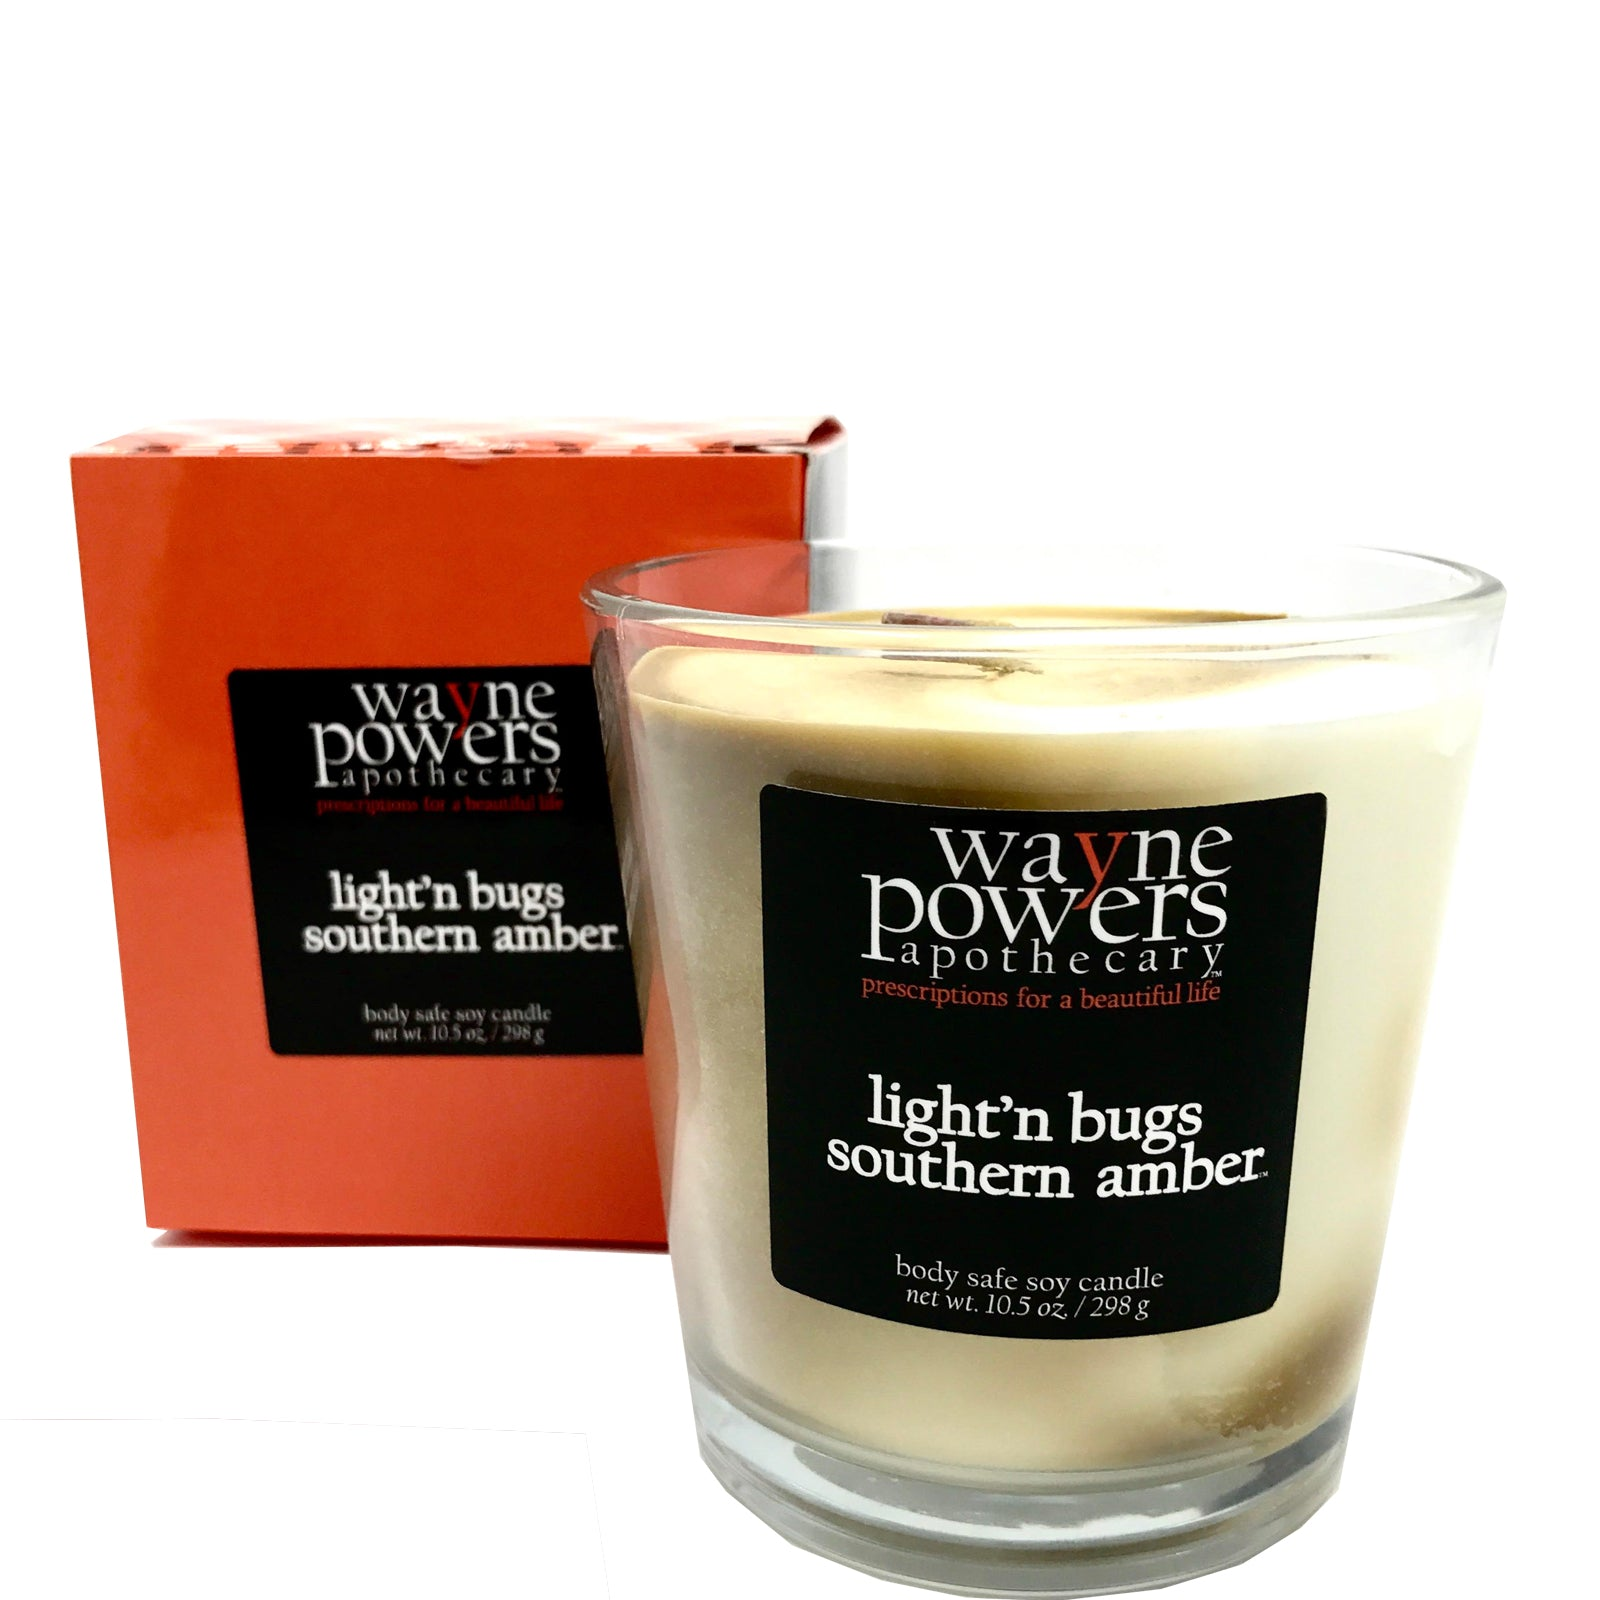 Light'n Bugs Southern Amber Body Safe Soy Candle by Wayne Powers Apothecary